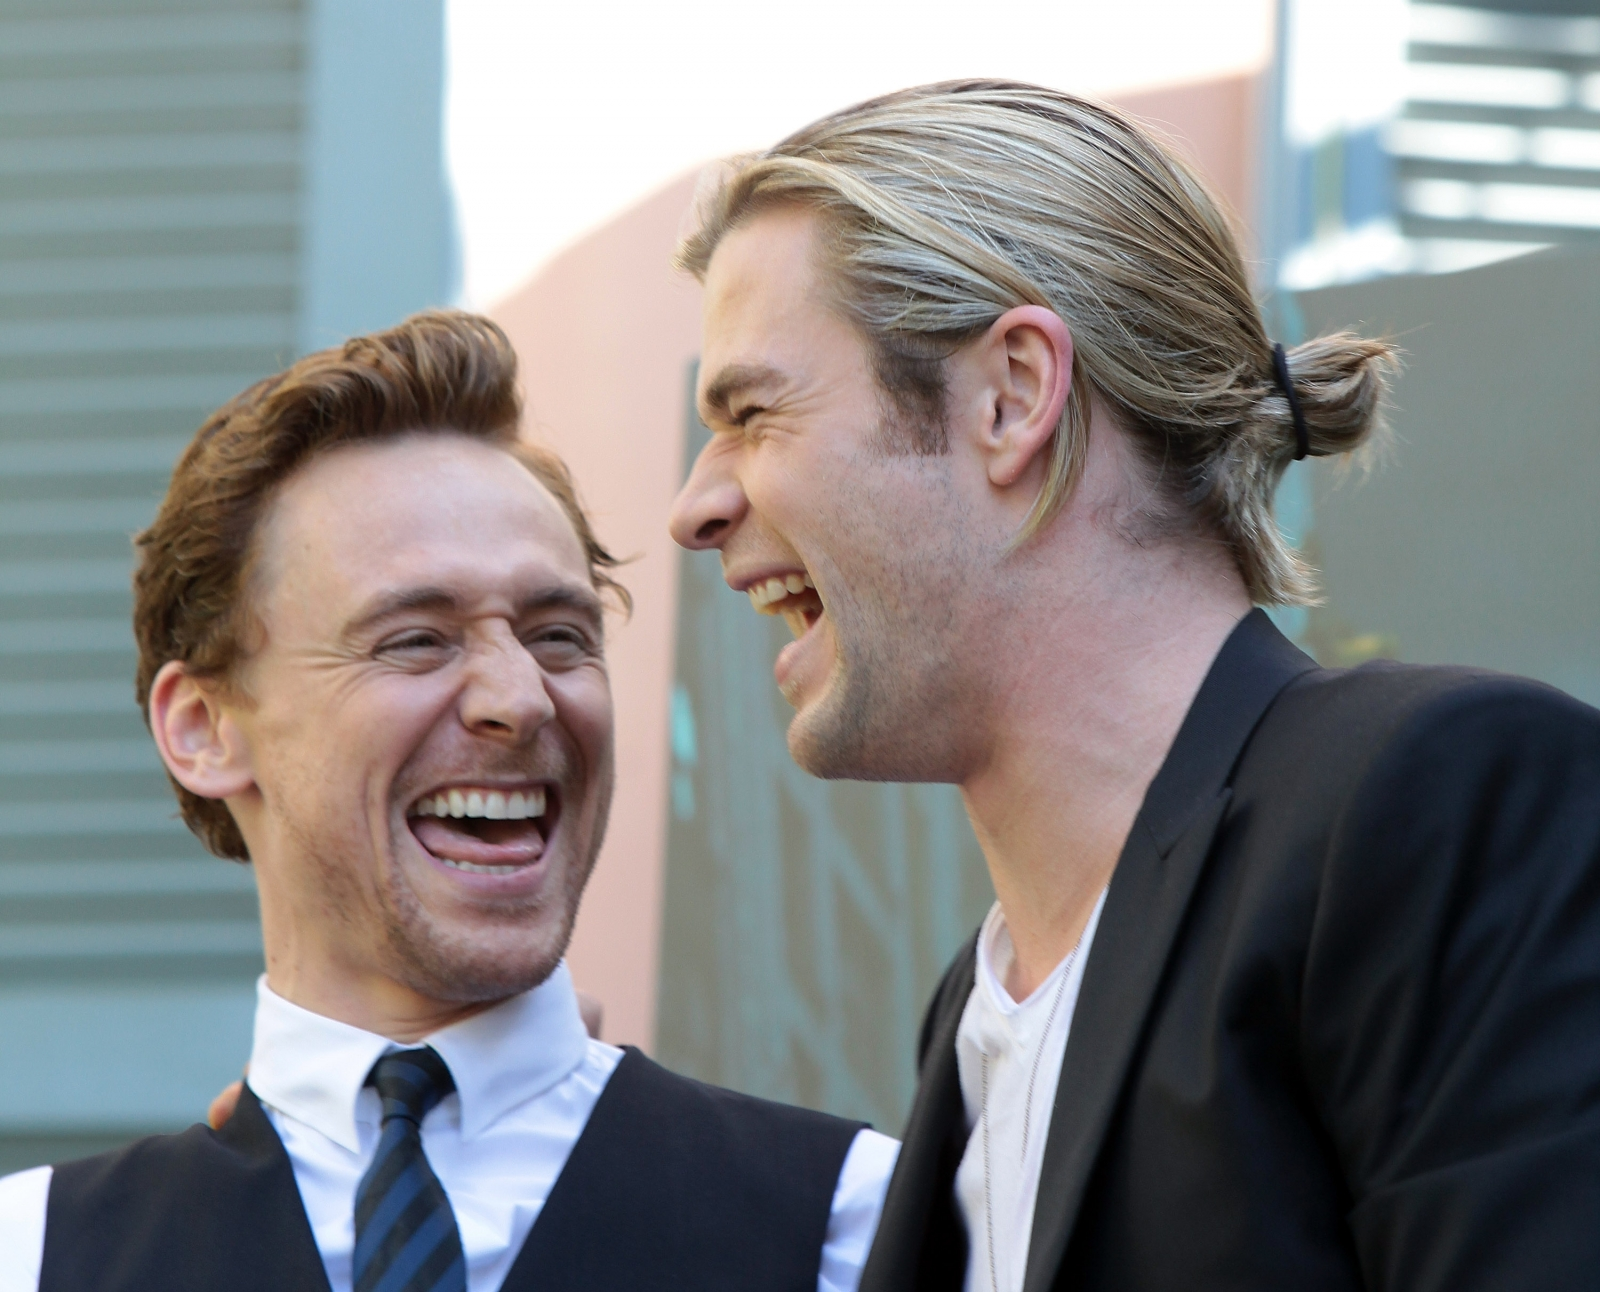 Thor: Ragnarok stars Chris Hemsworth and Tom Hiddleston ...